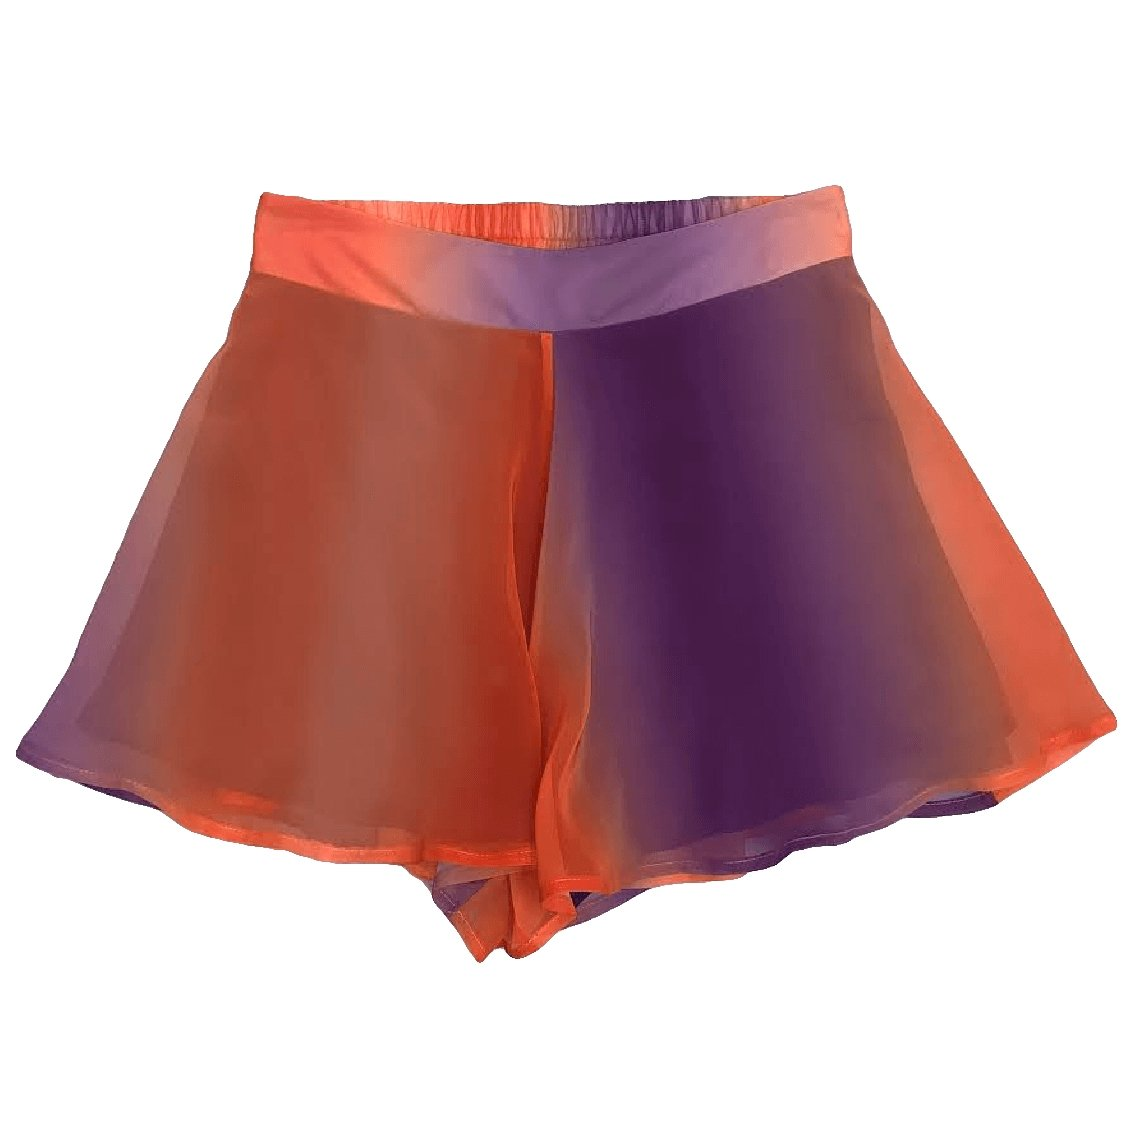 Adrienne Inc Ombre Swing Short - Mr. Knickerbocker